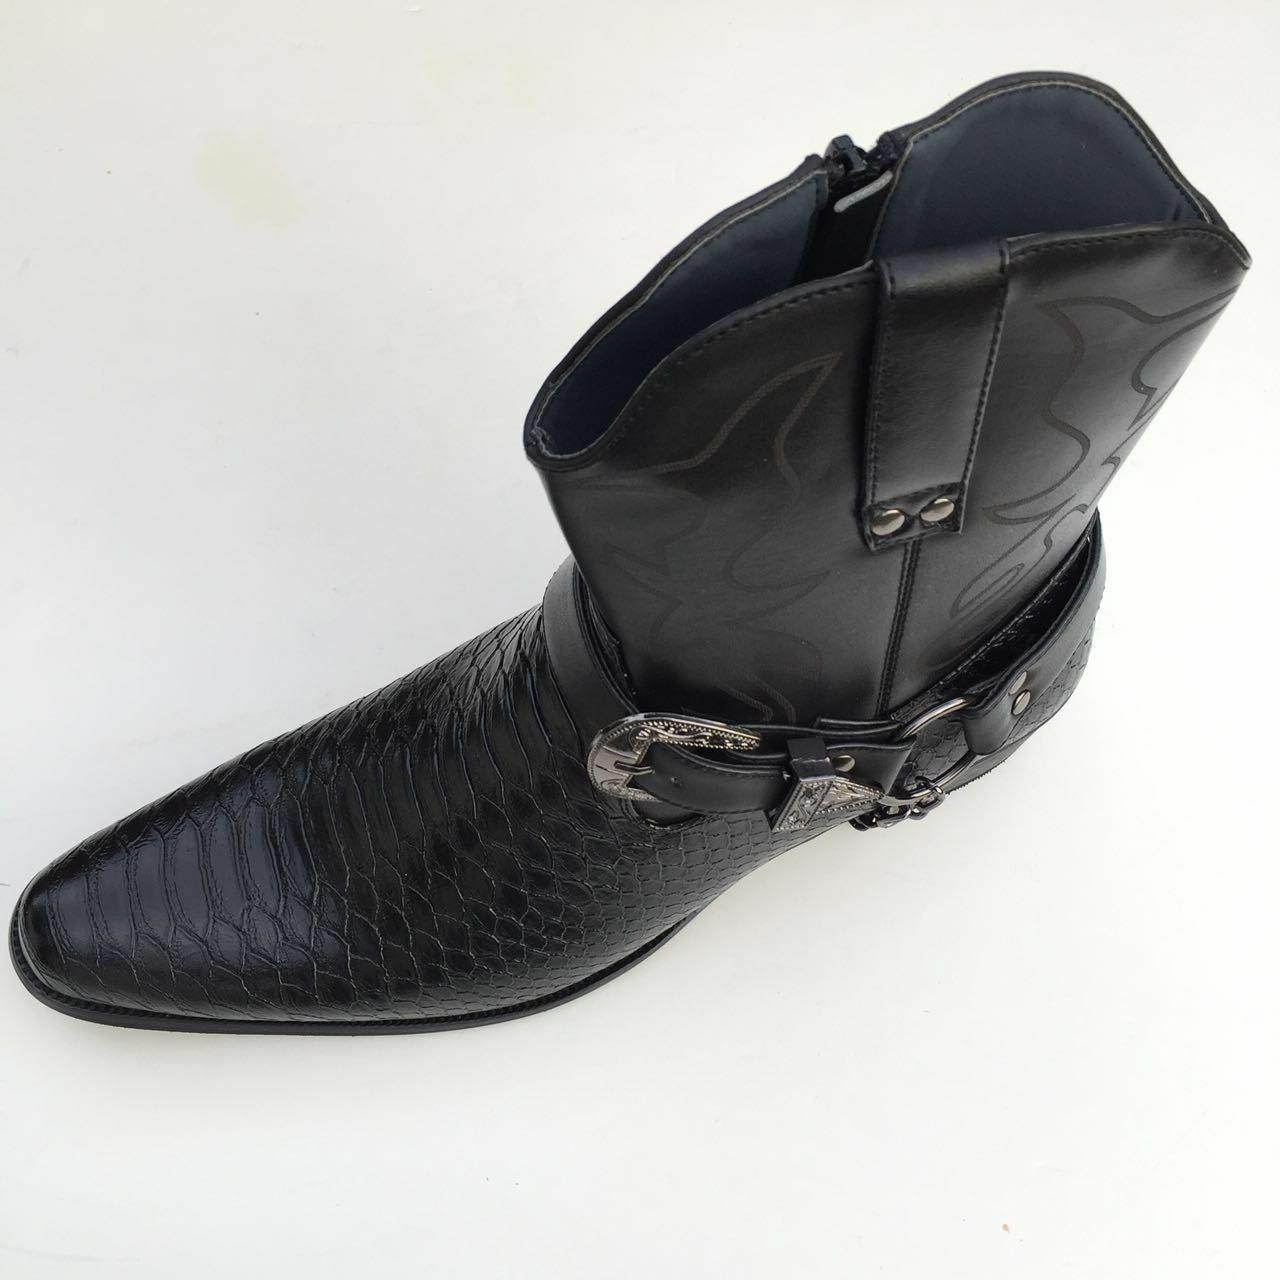 Men's Boots Western Snake Skin Zippper Buckle Harness